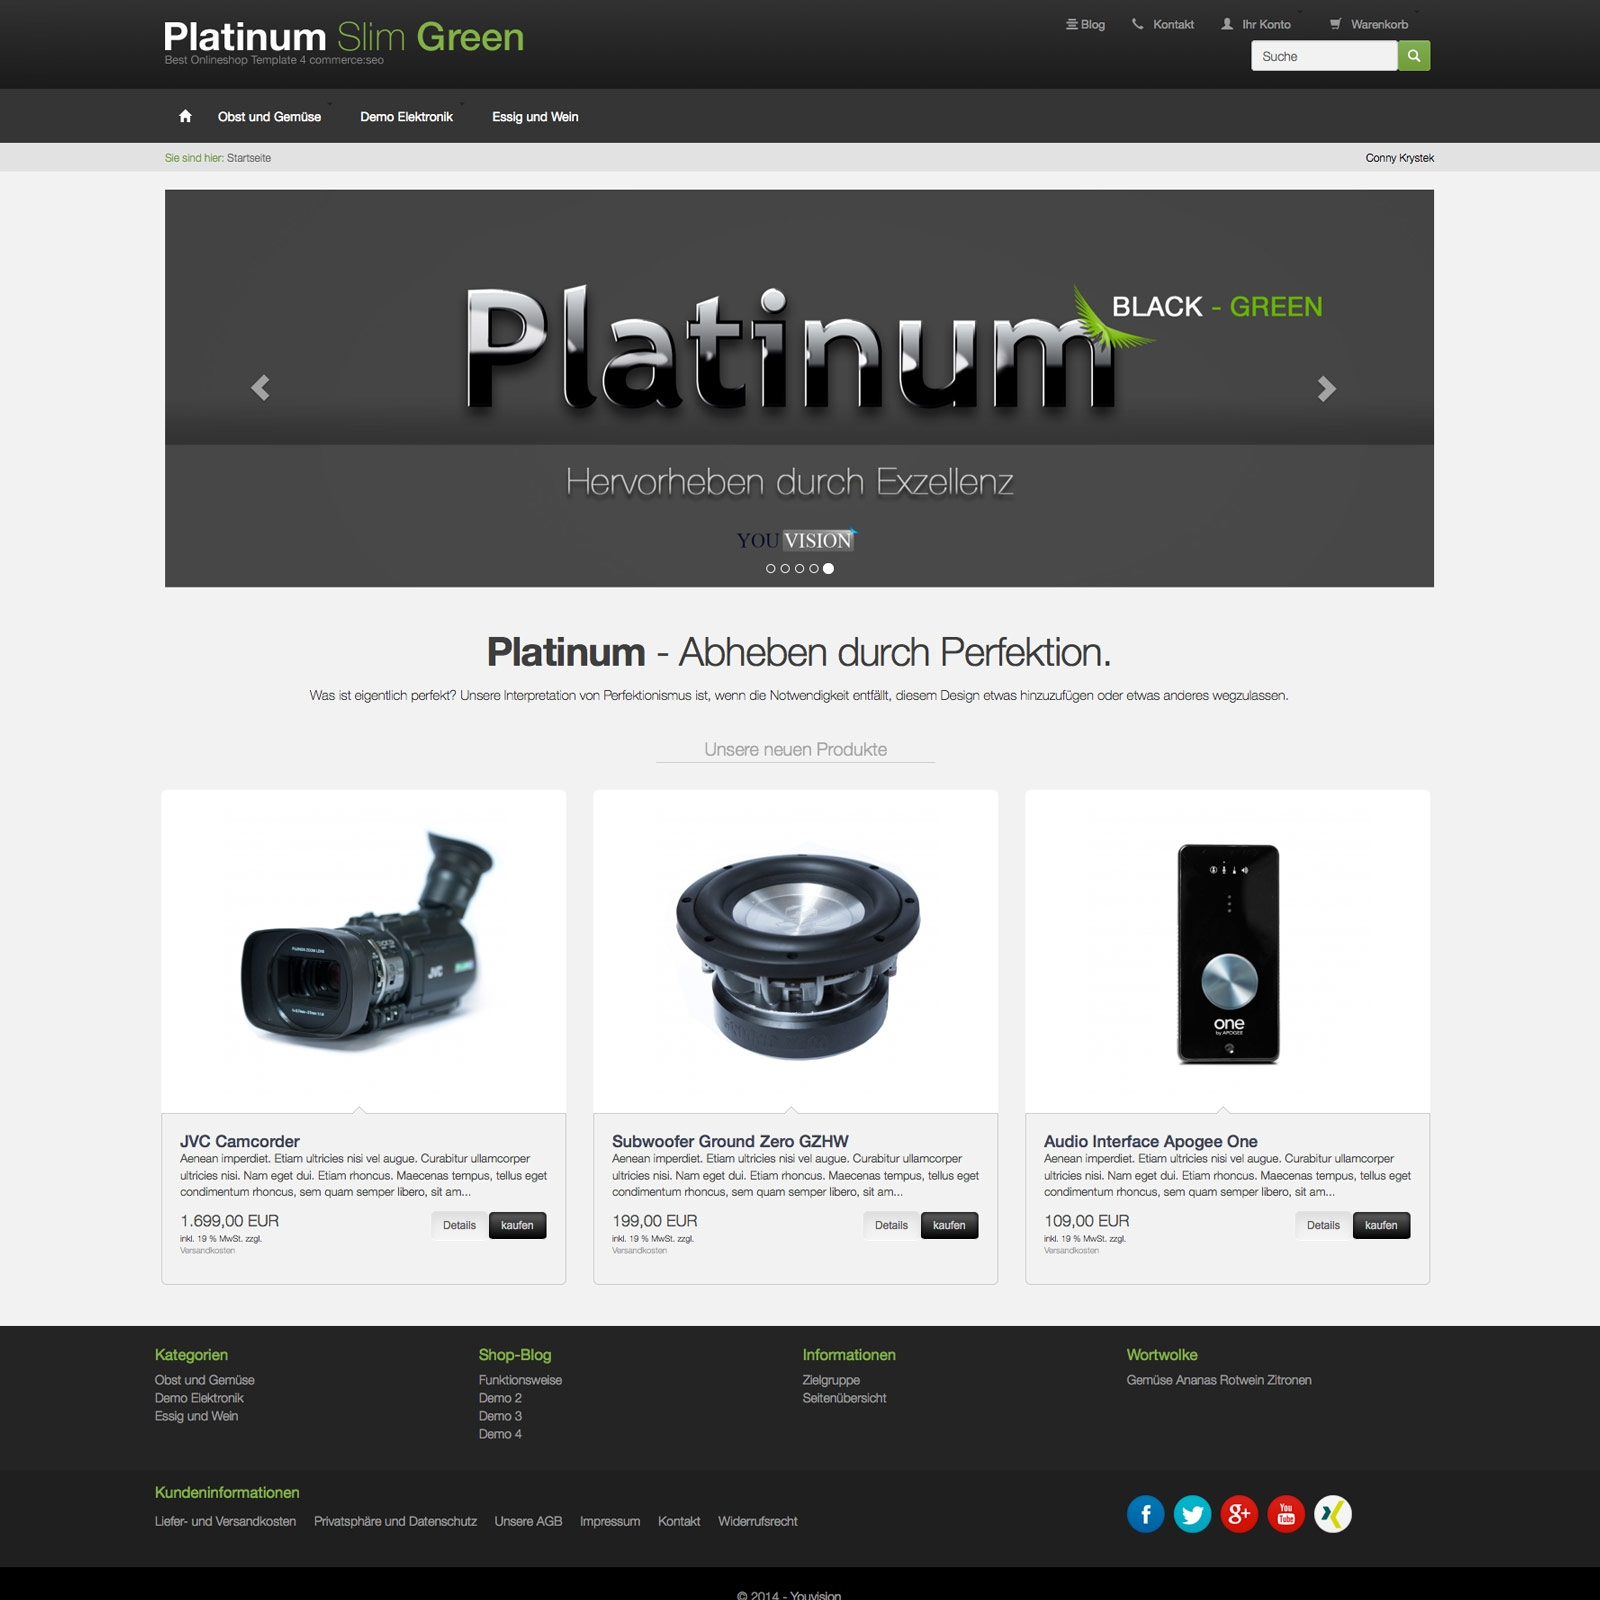 commerce seo template Platinum Slim Green - css responsiv template